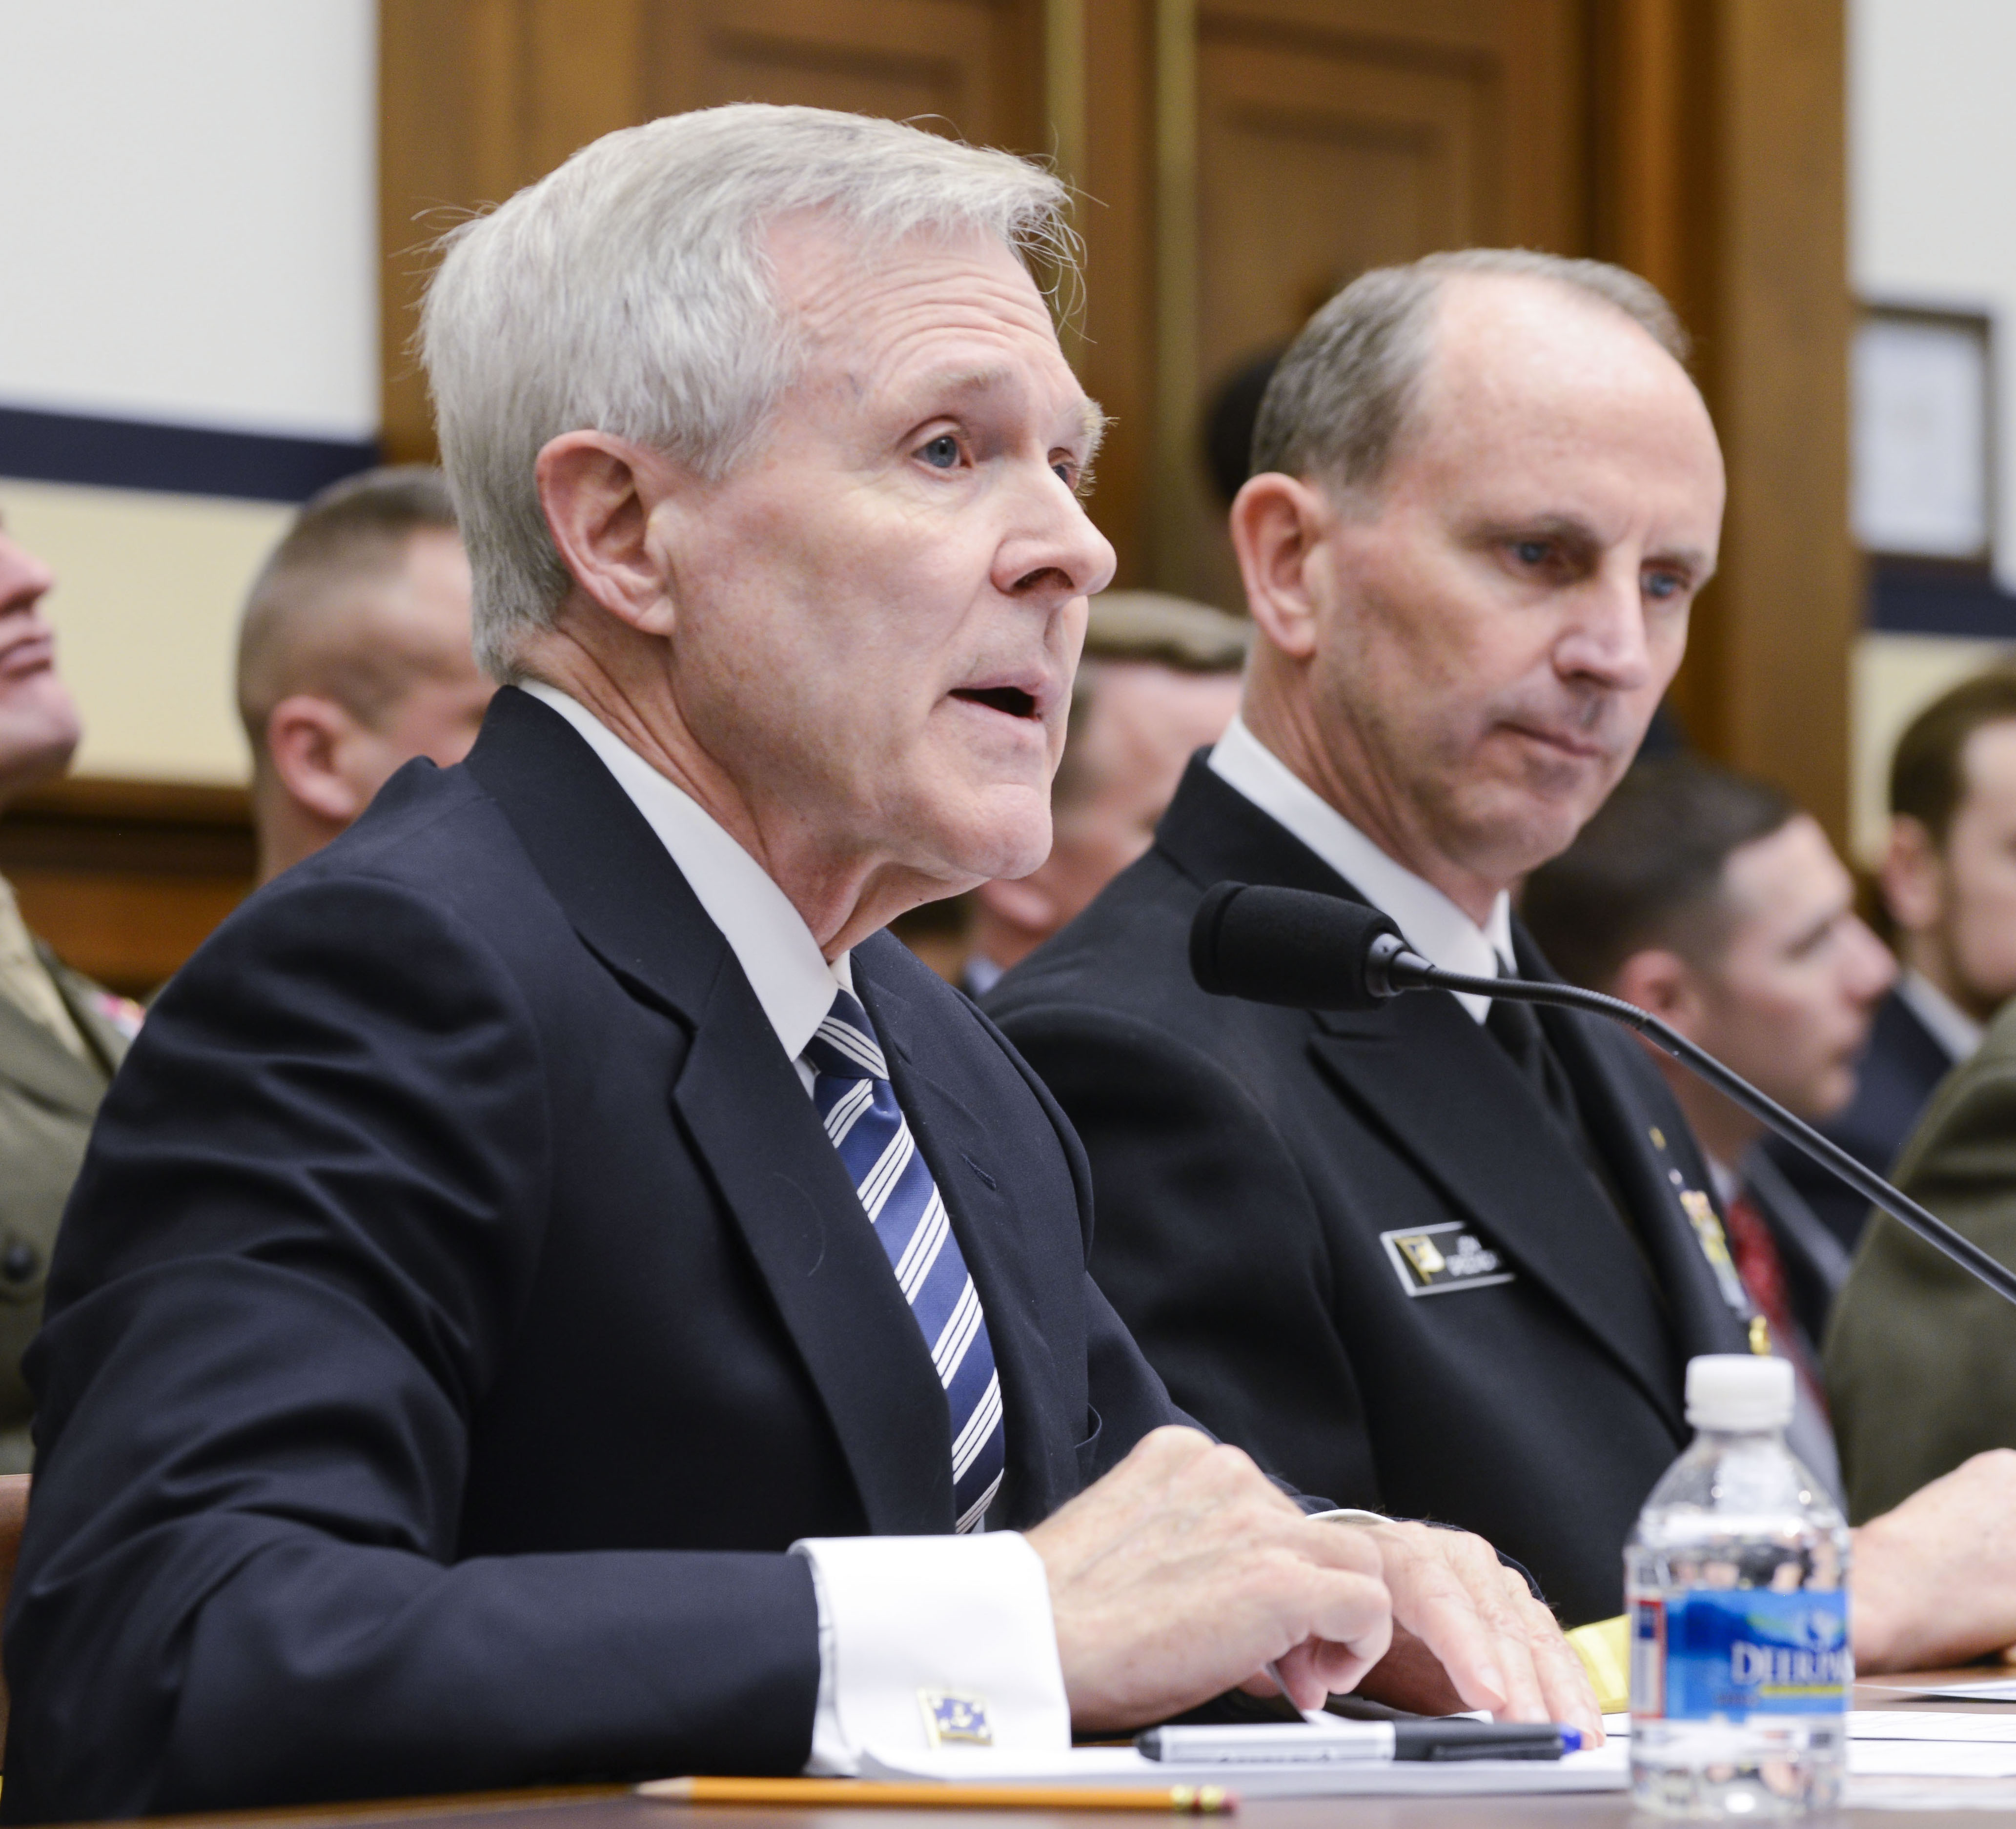 Secretary of the Navy (SECNAV) Ray Mabus, left, Chief of Naval Operations (CNO) Adm. Jonathan Greenert testify before the House Armed Services Committee (HASC) in March 2014. US Navy Photo